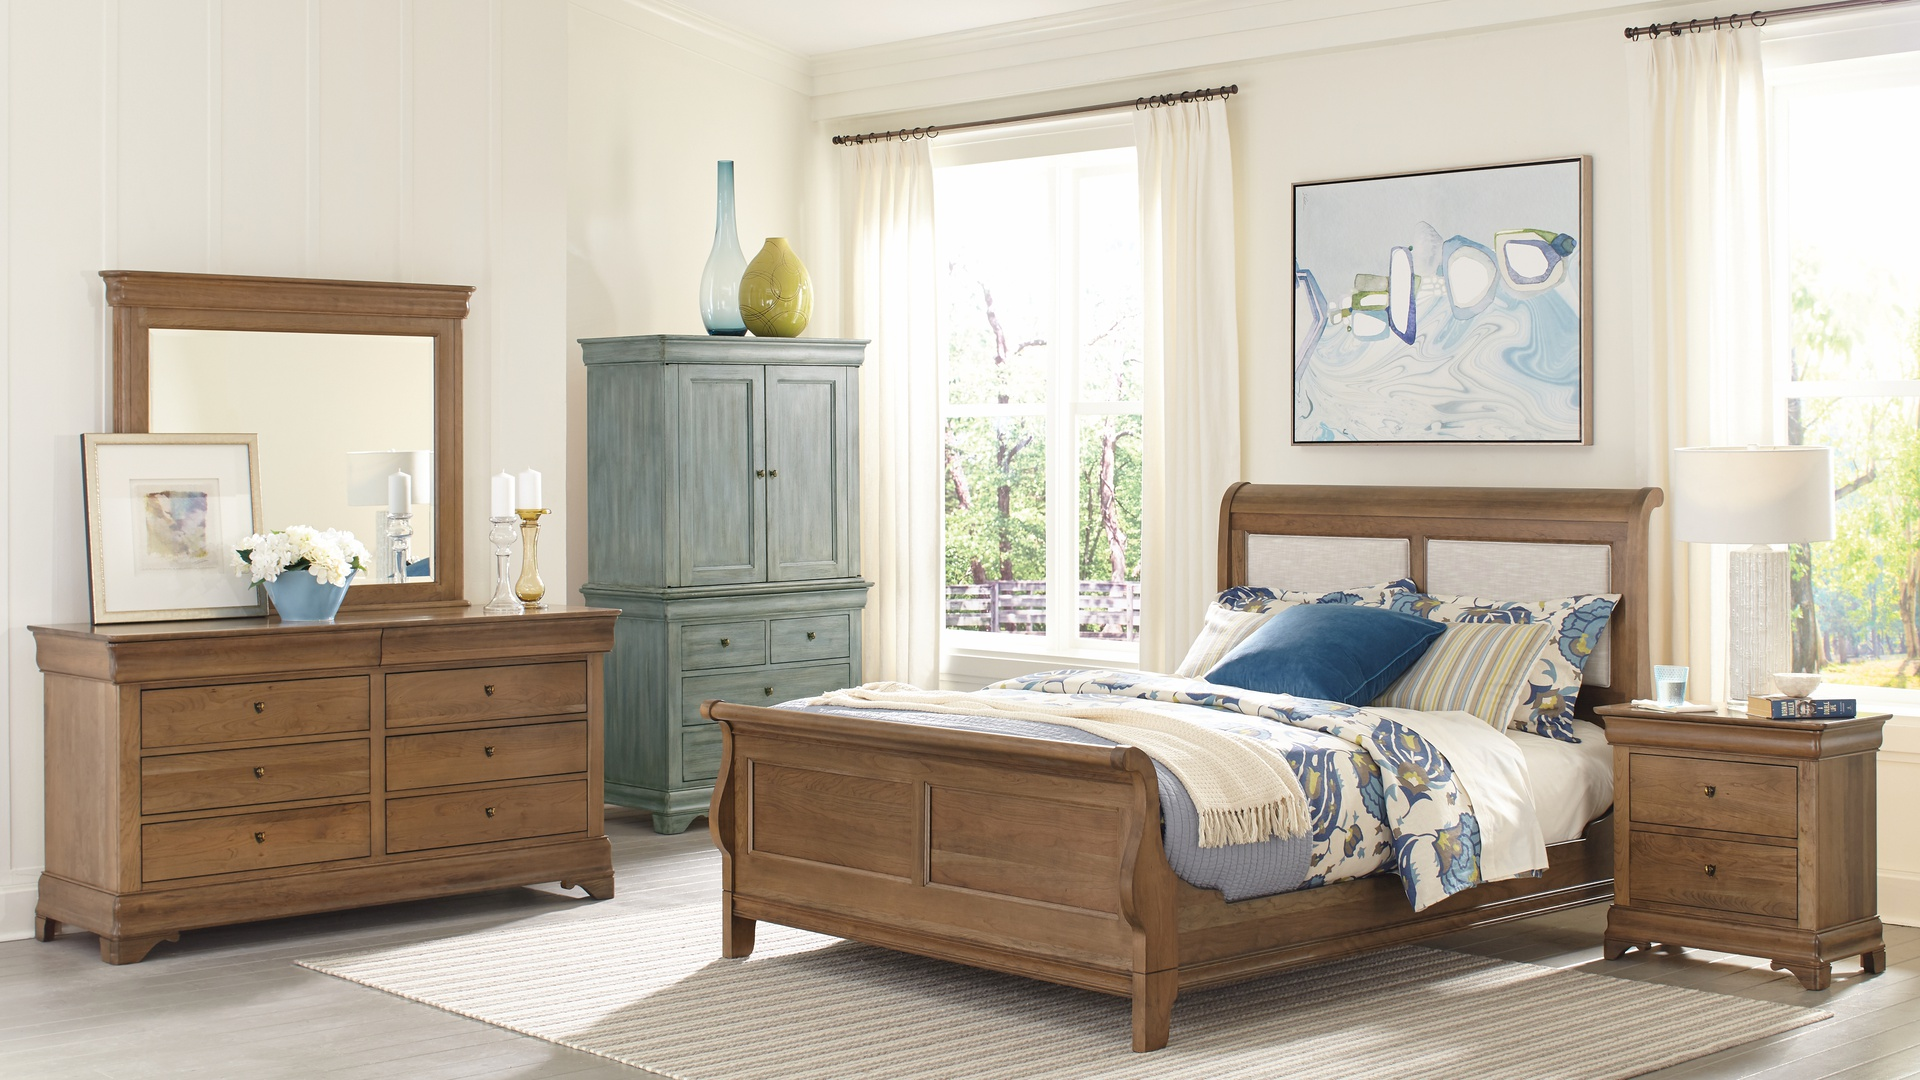 Solid Wood. Timeless Style. Since 10.  Durham Furniture